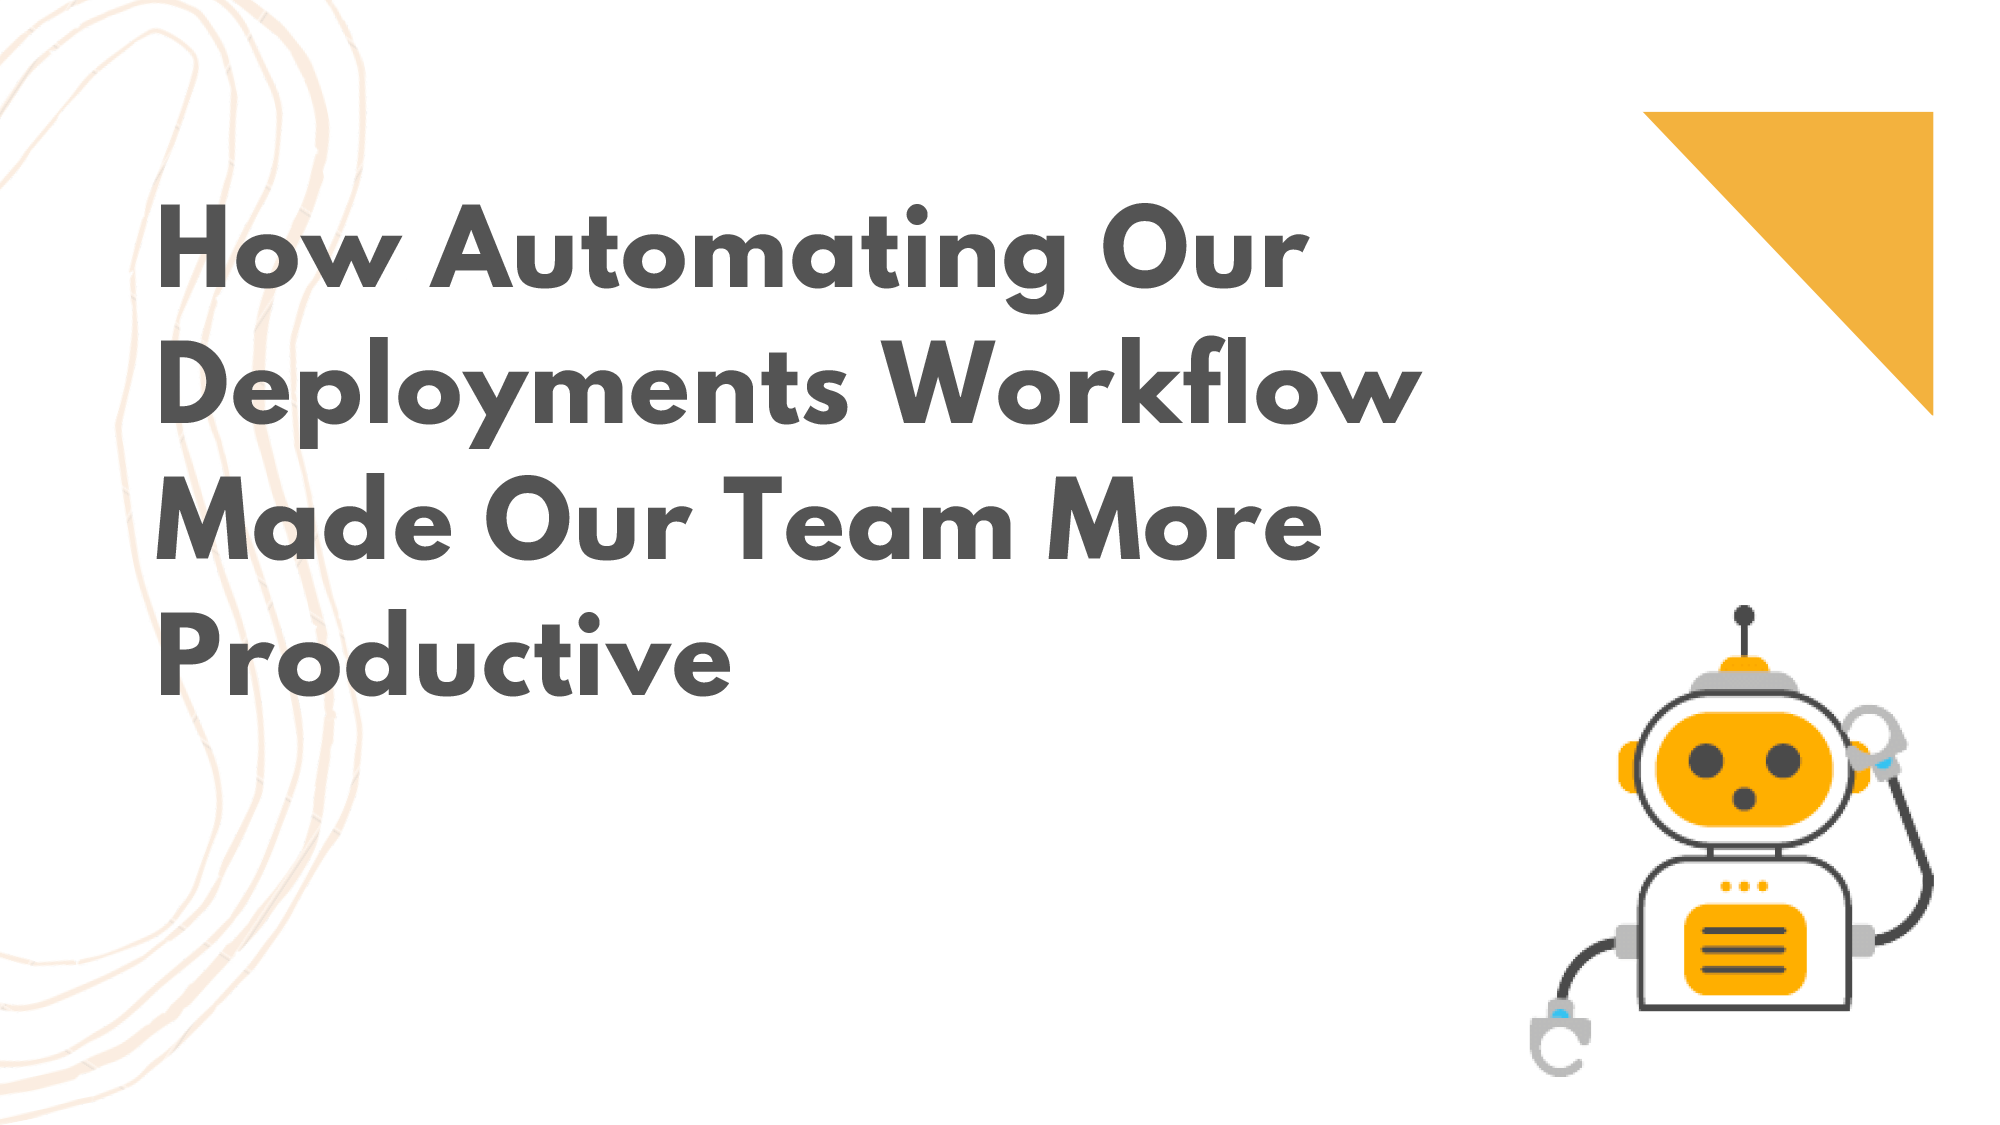 How Automating Our Deployments Workflow Made Our Team More Productive